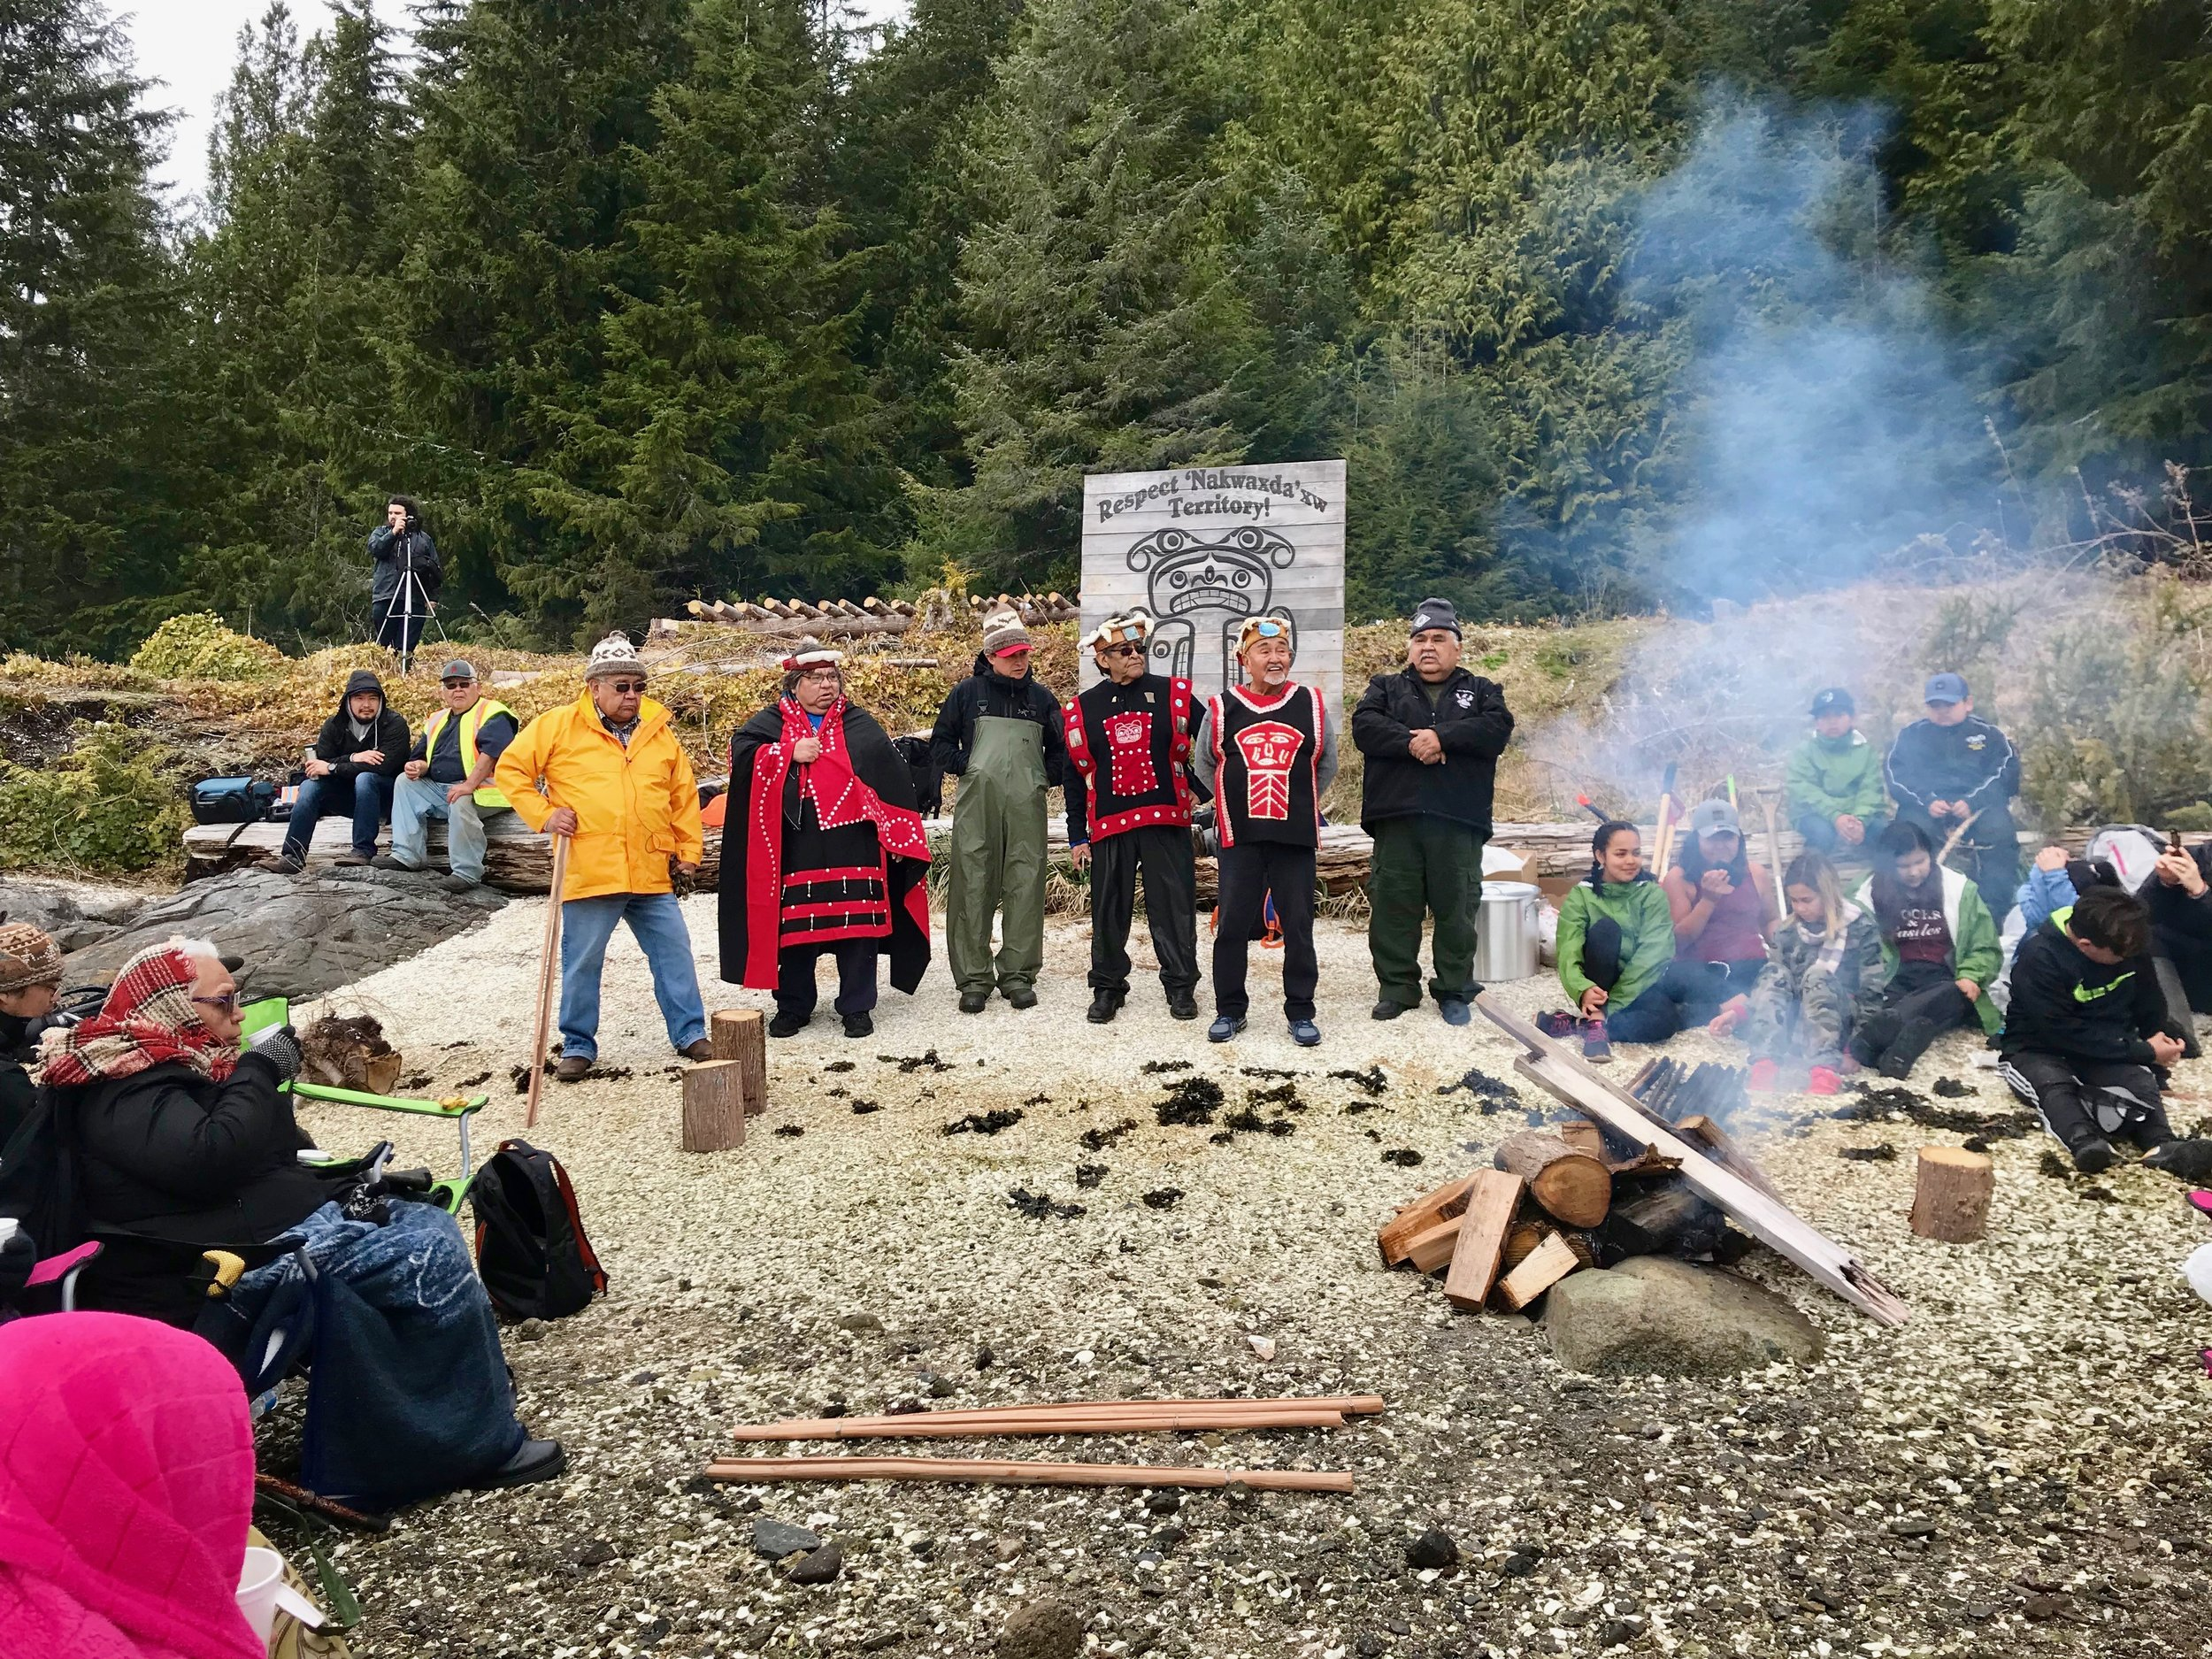 Hereditary chiefs conducting welcome ceremony for elders and youth visiting the traditional homeland of the 'Nakwaxda'xw, April 2018